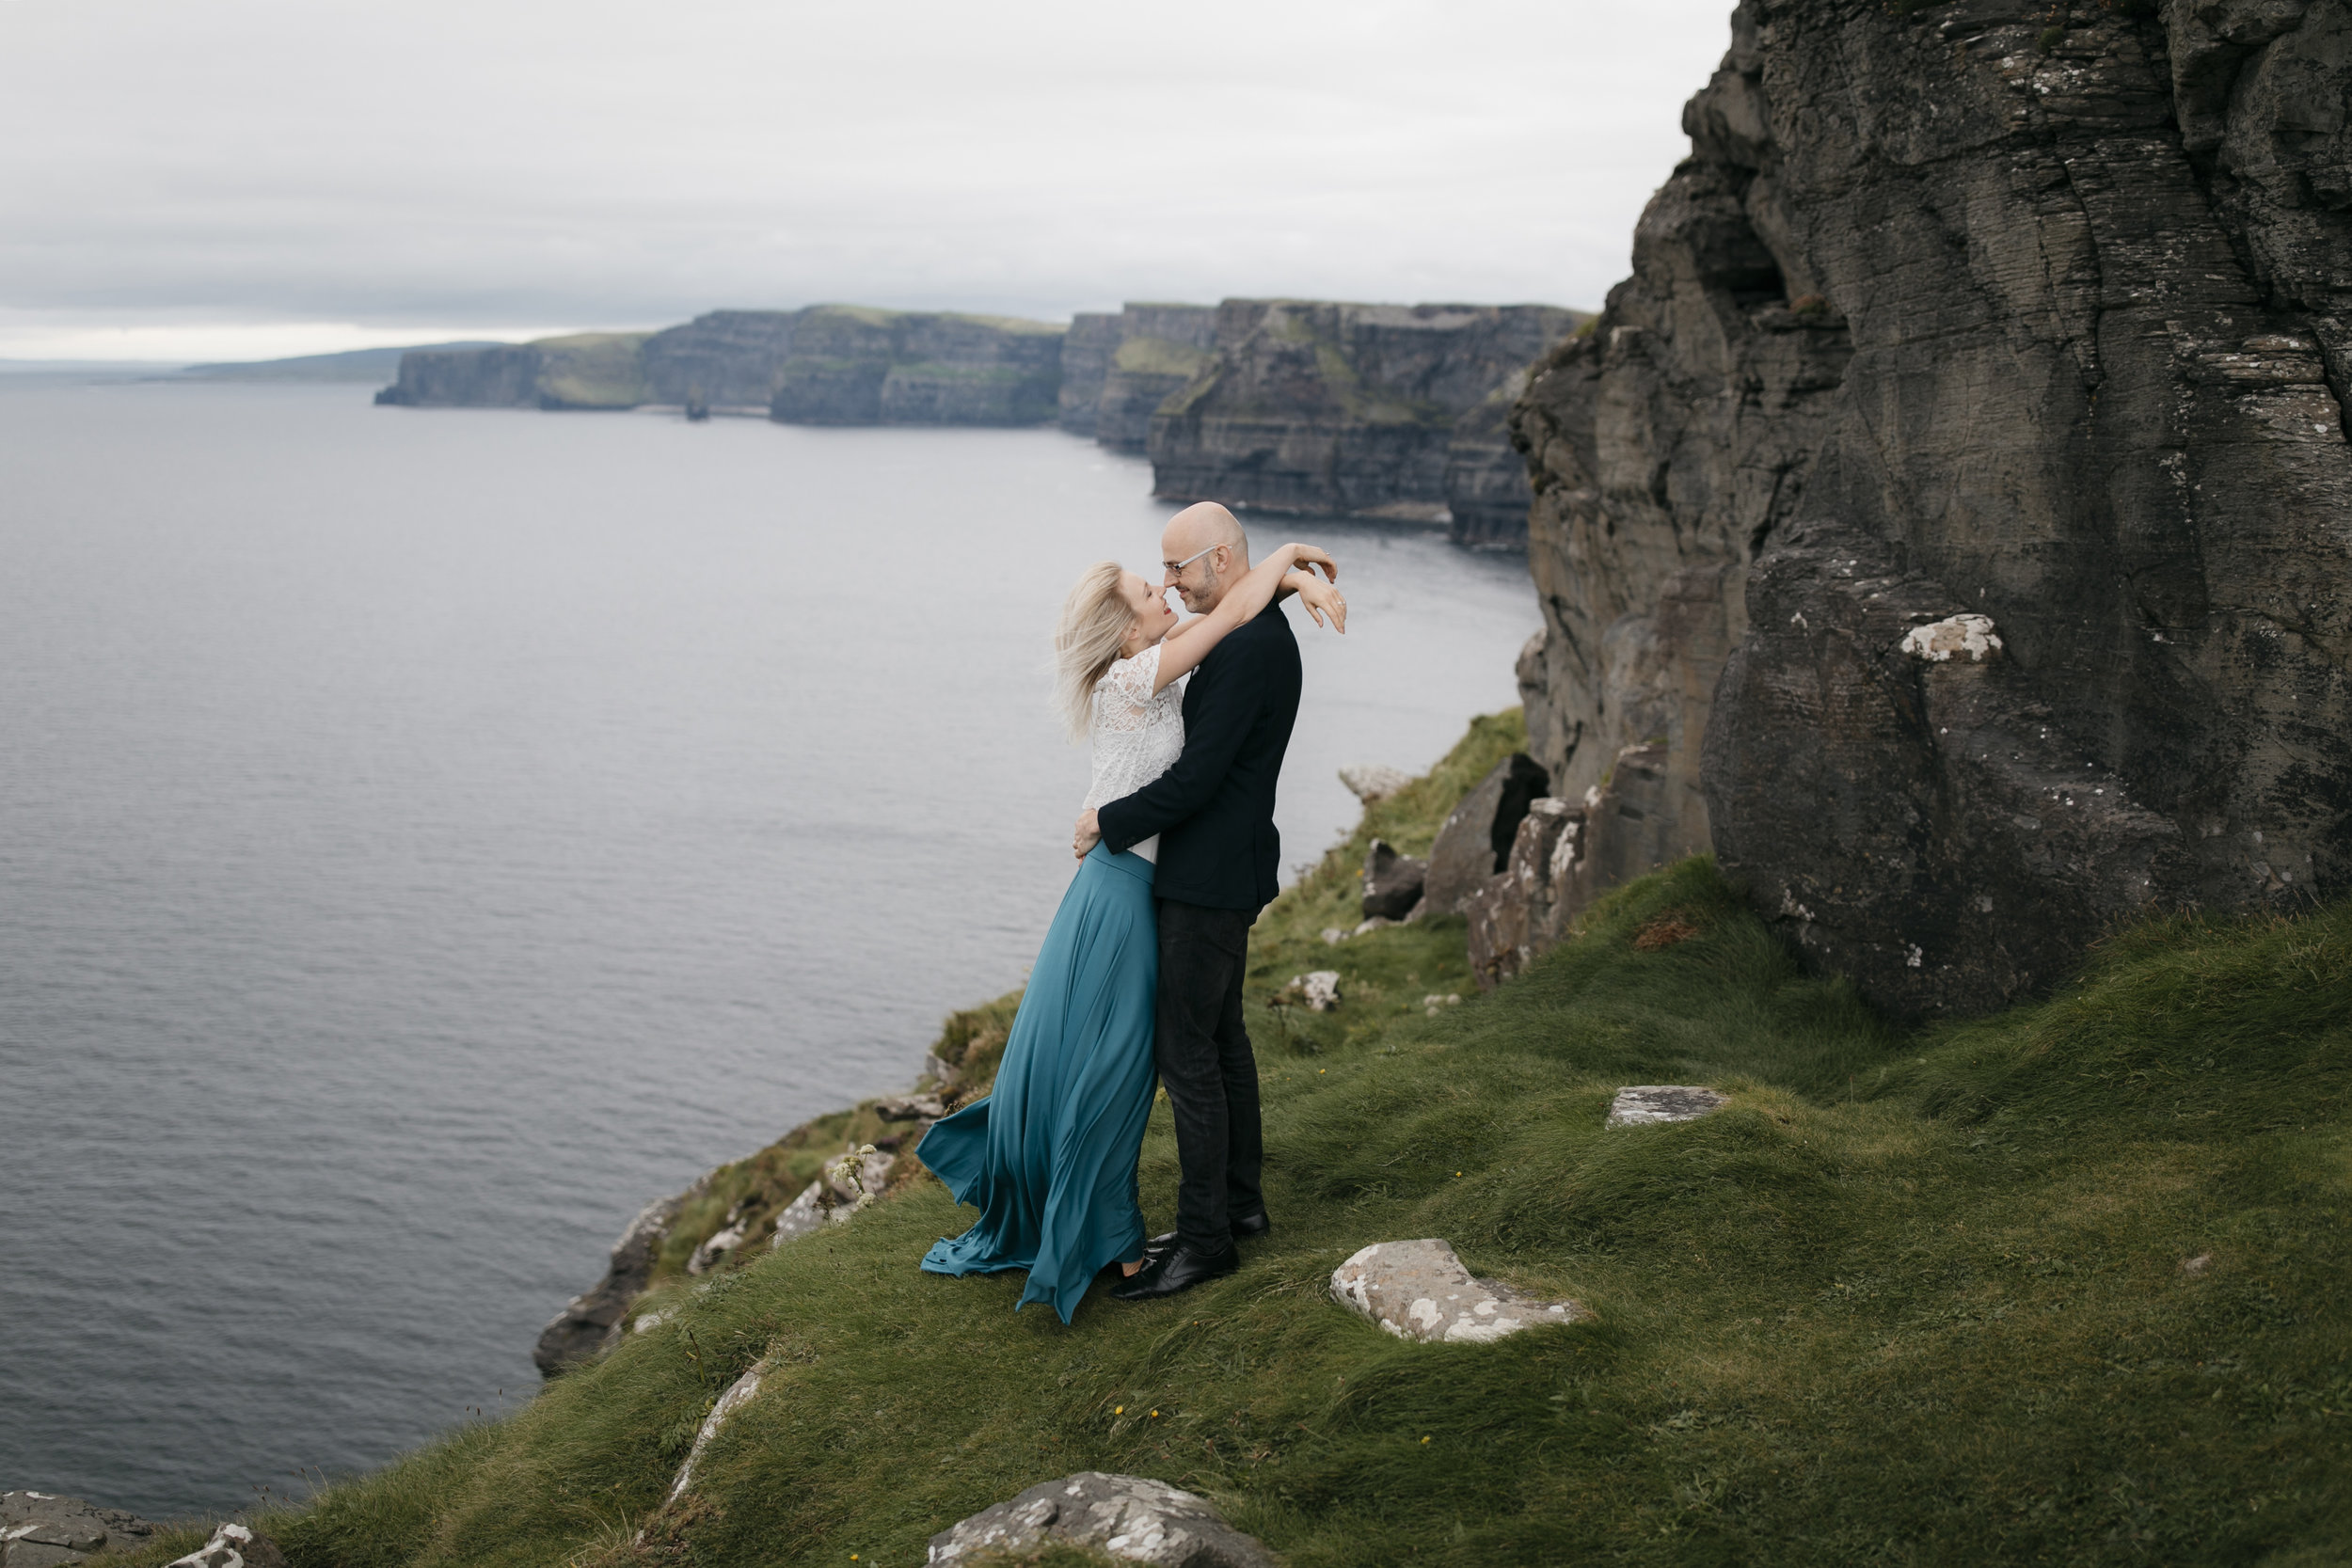 Adventurous couple cherishing each other at the Cliffs of Moher by Ireland Elopement Photographer Colby and Jess